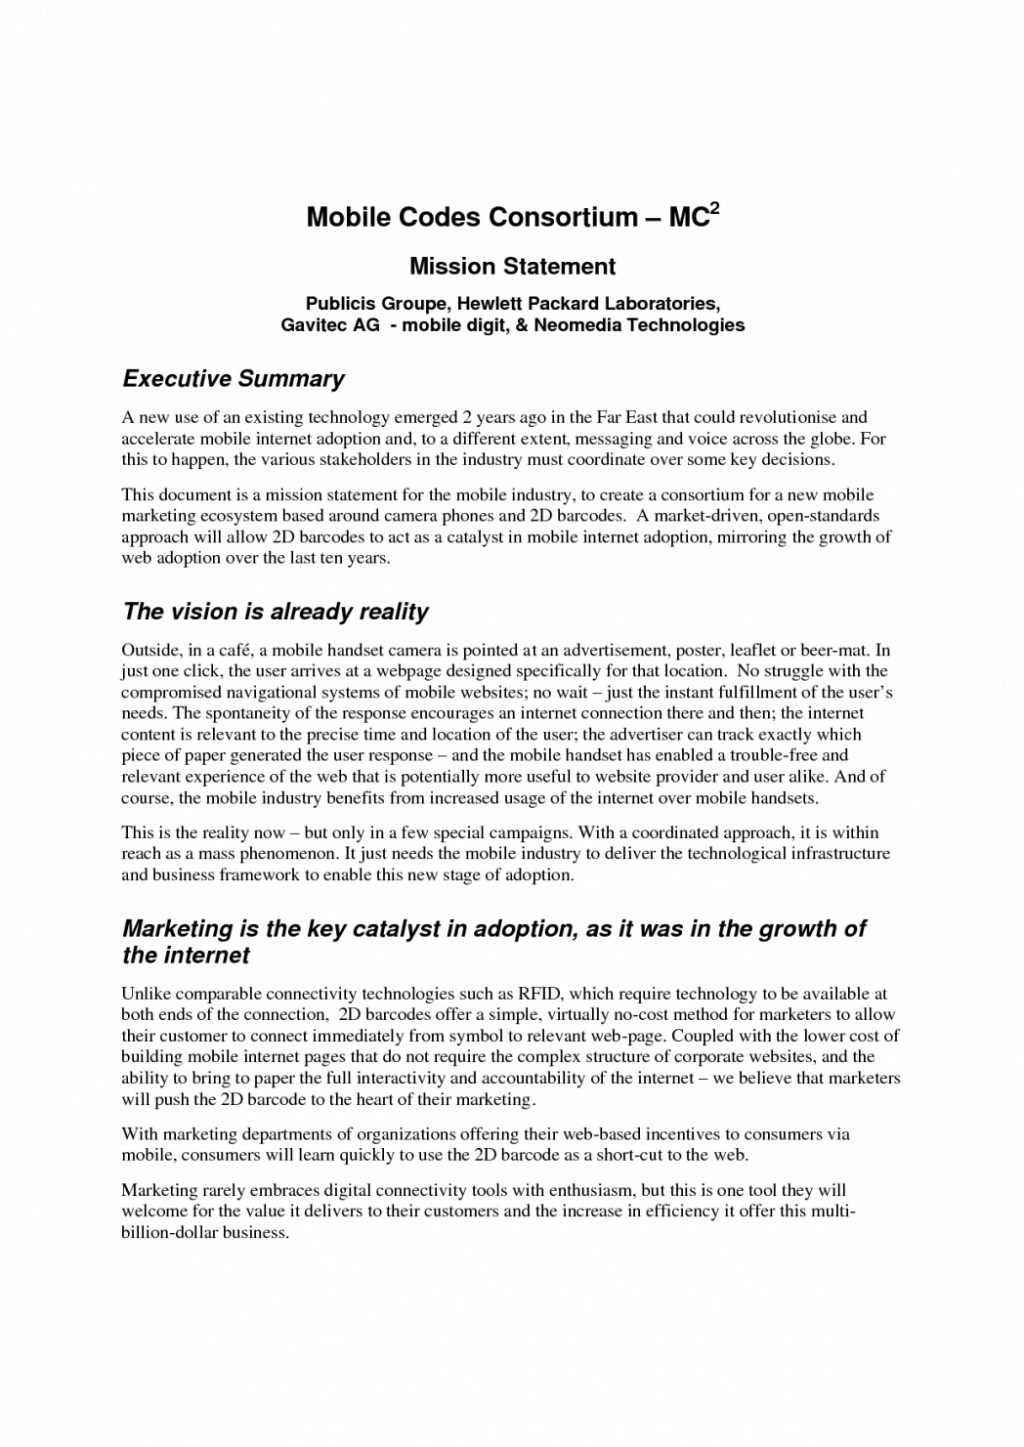 006 College Essay Writing Service Reviews Business Format Writers For Hire Disney Mission Statement Template H1t Professional Entrance Application Best Pay 1048x1481 Formidable Large